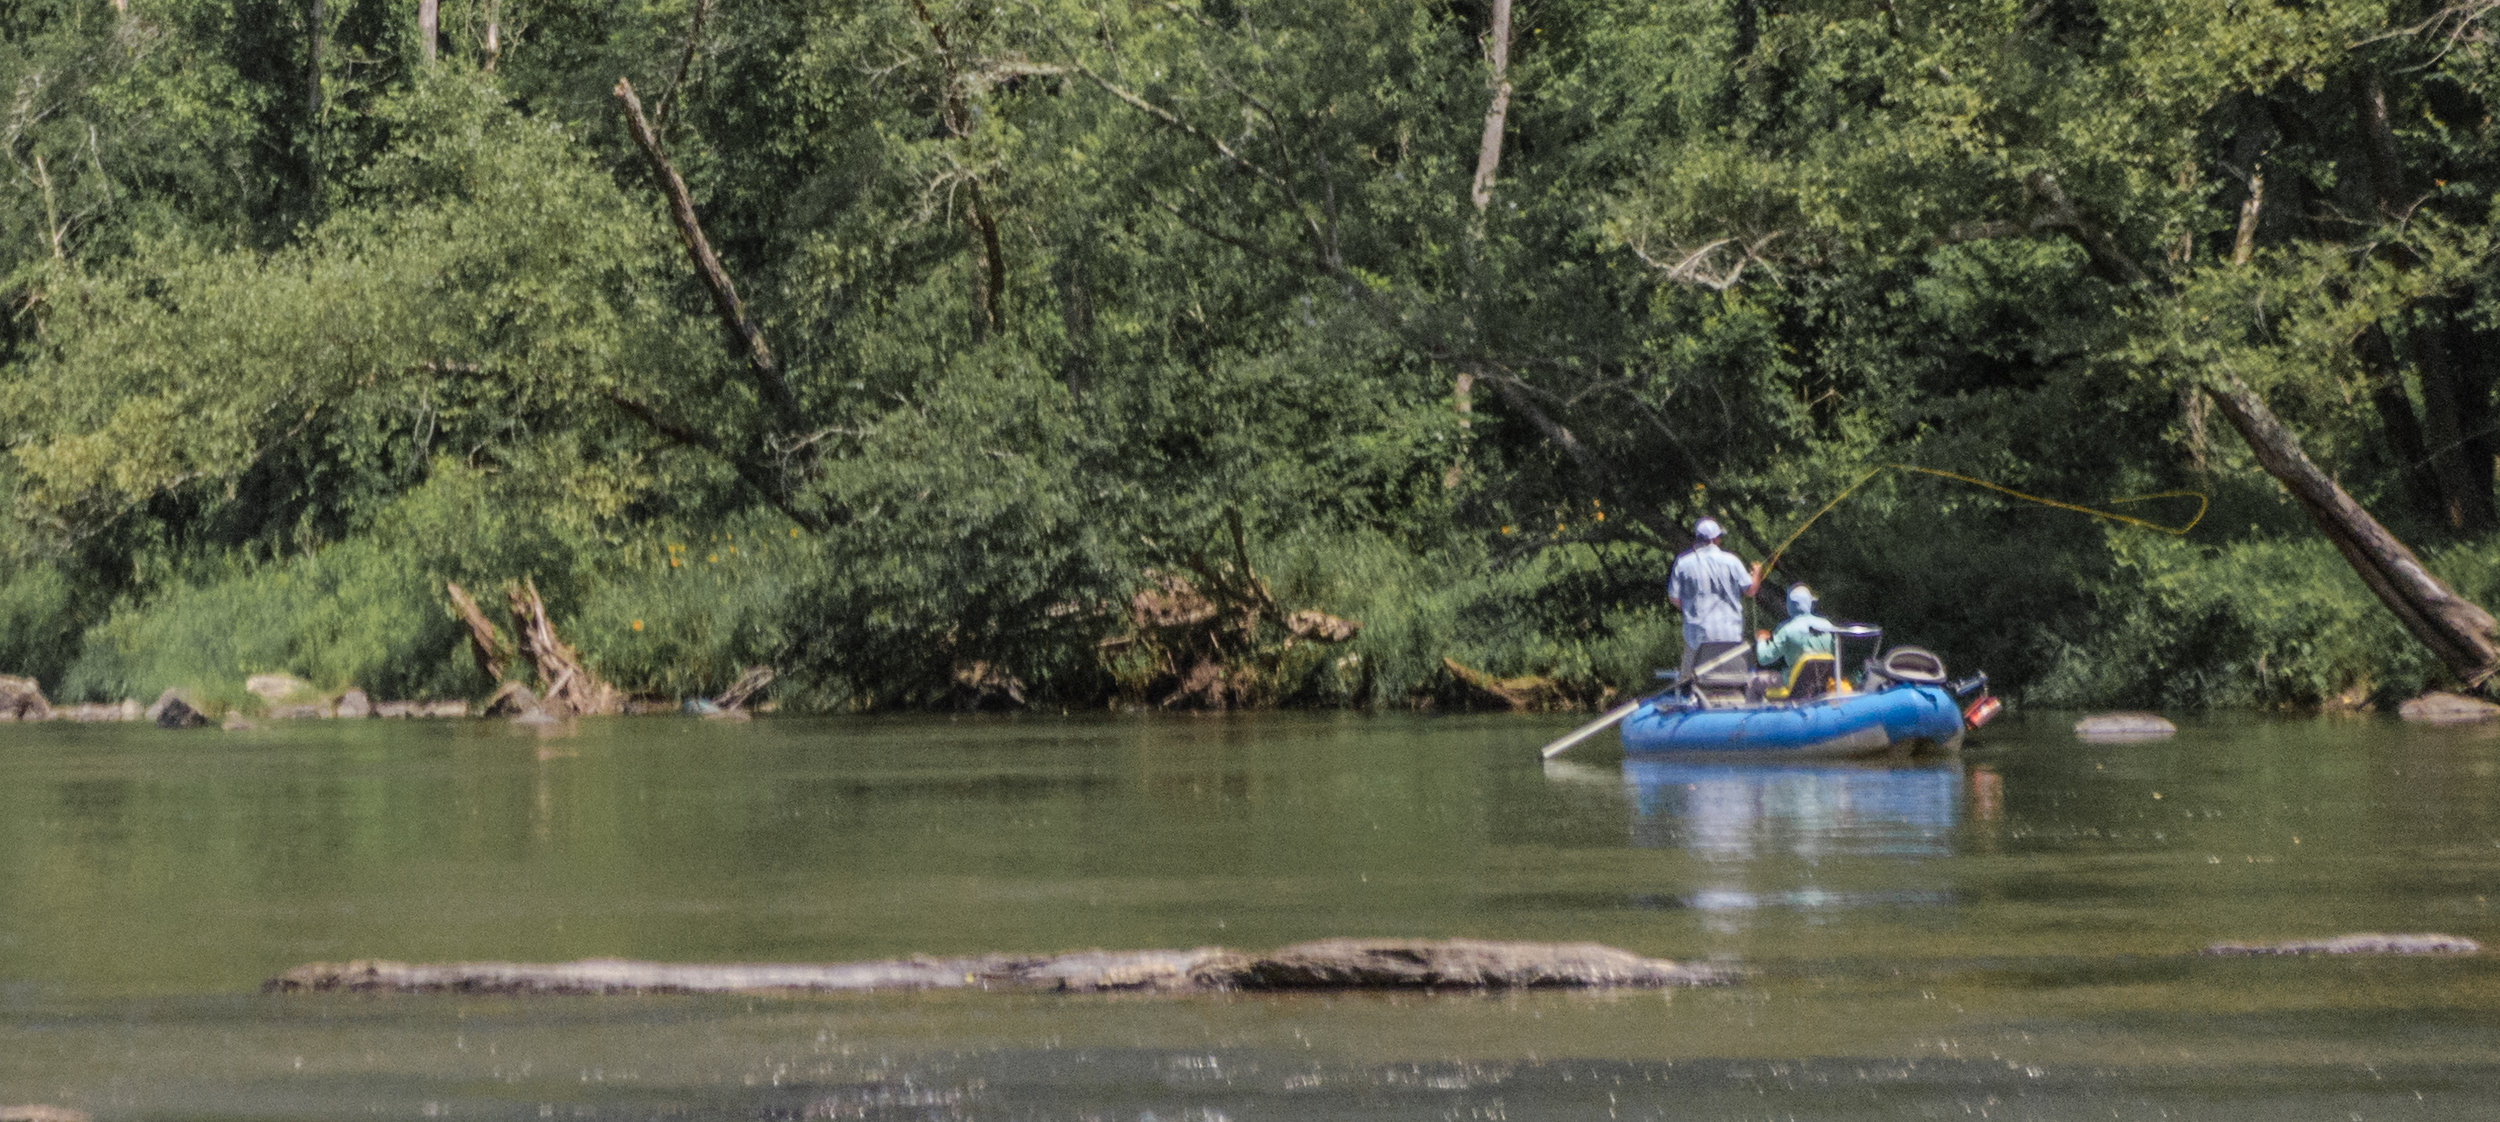 Fly Casting on The French Broad.jpg